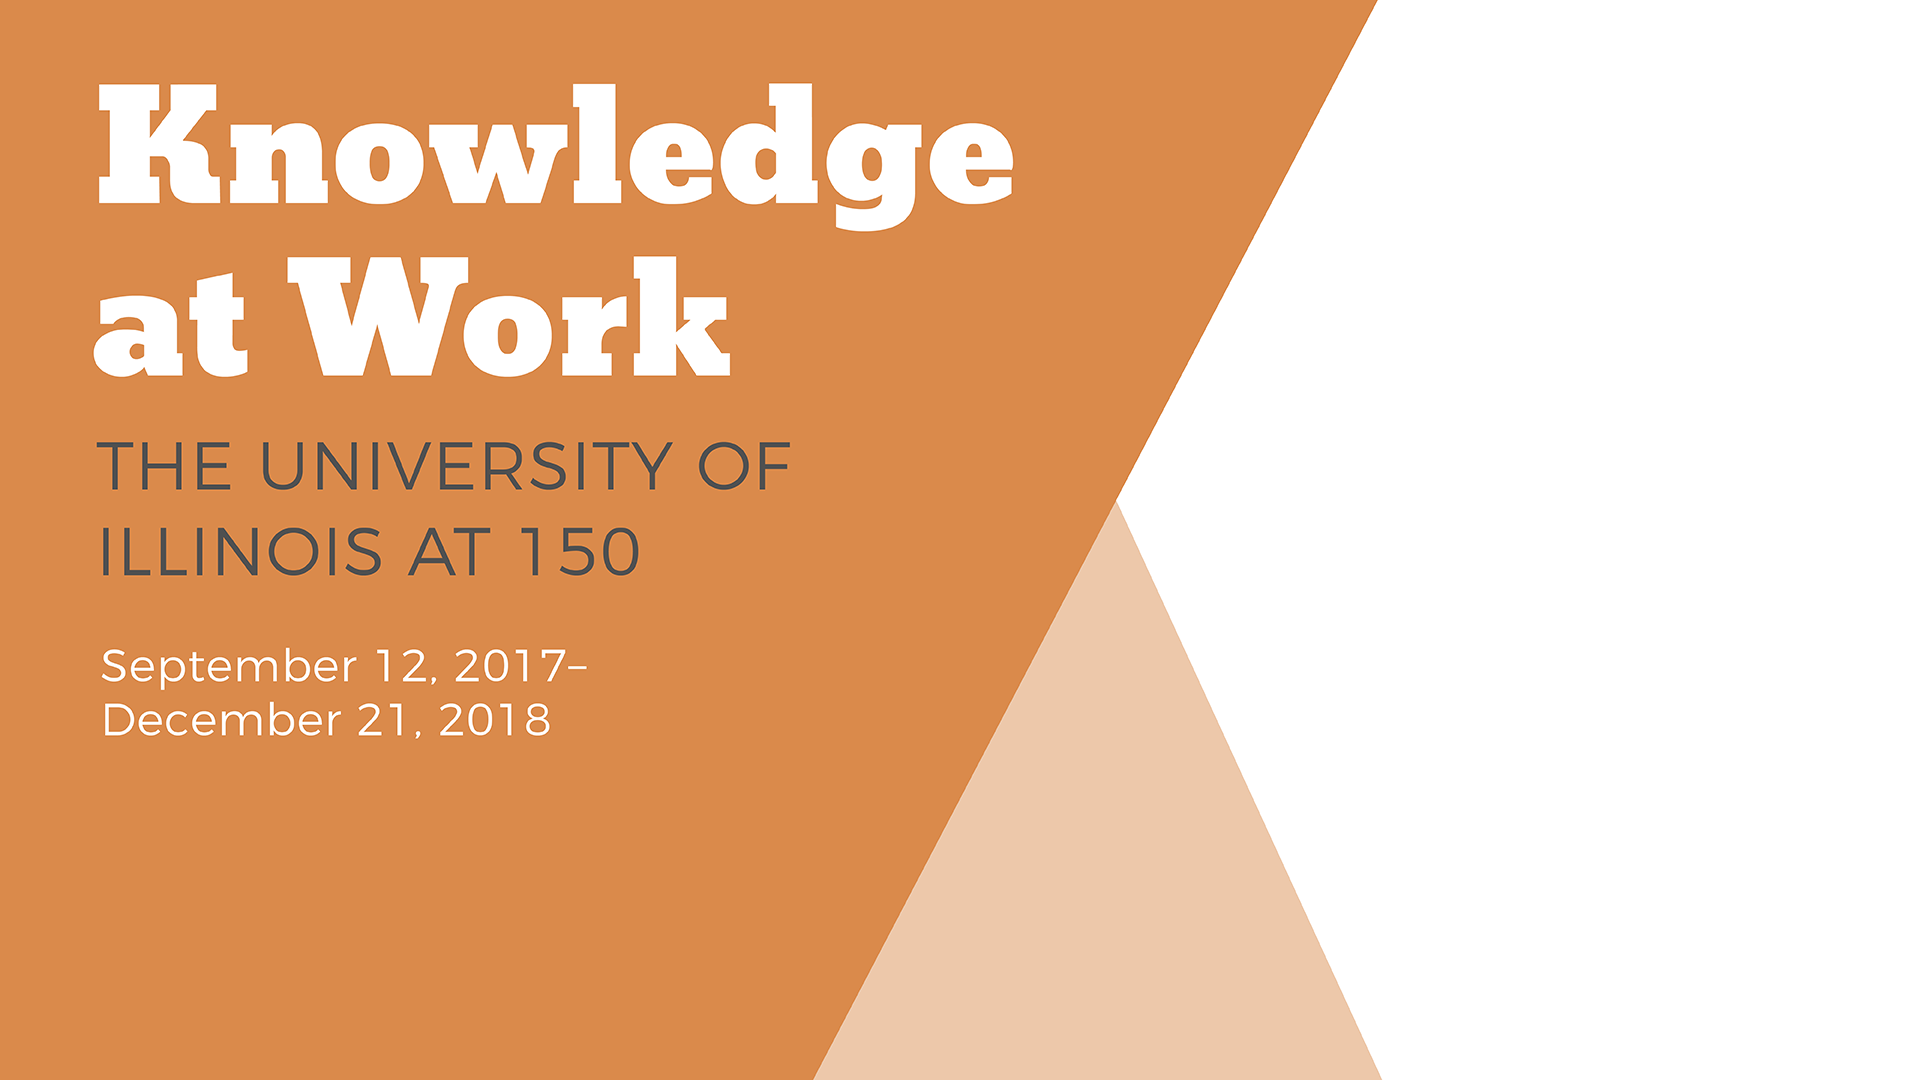 Knowledge at Work, UI 150 event. 9/12/2017-12/21/2018